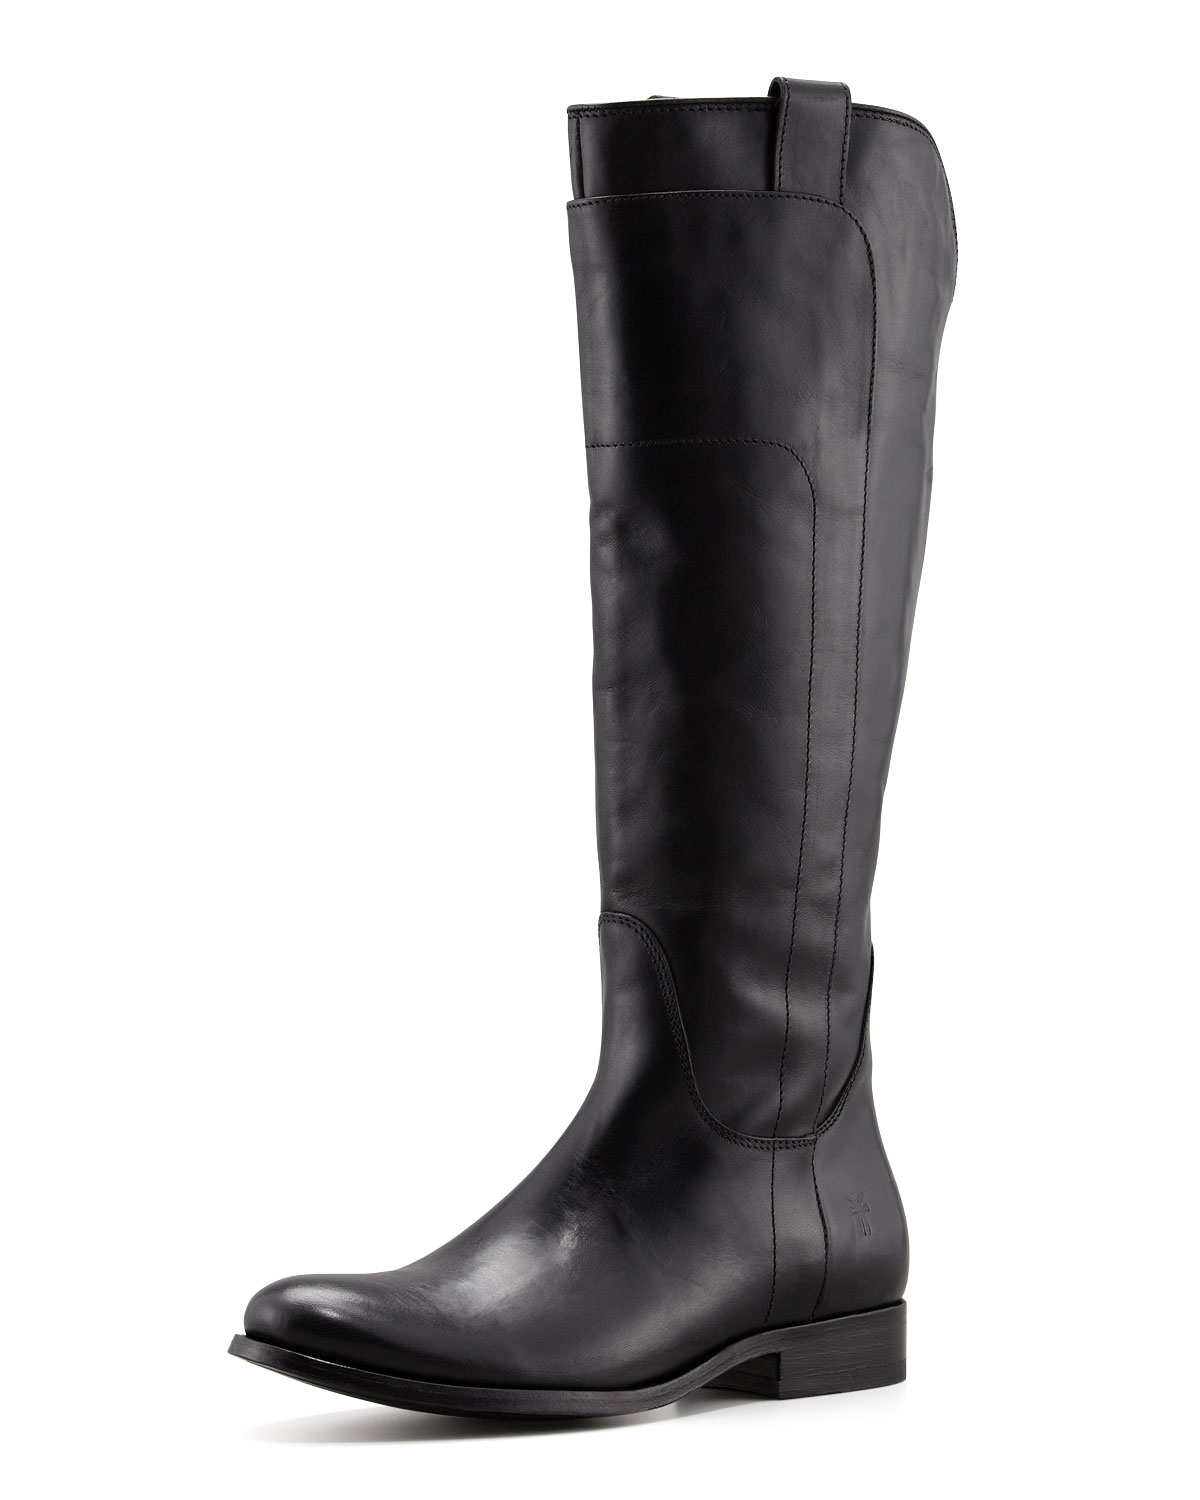 Frye Melissa Tall Leather Riding Boot In Black Lyst